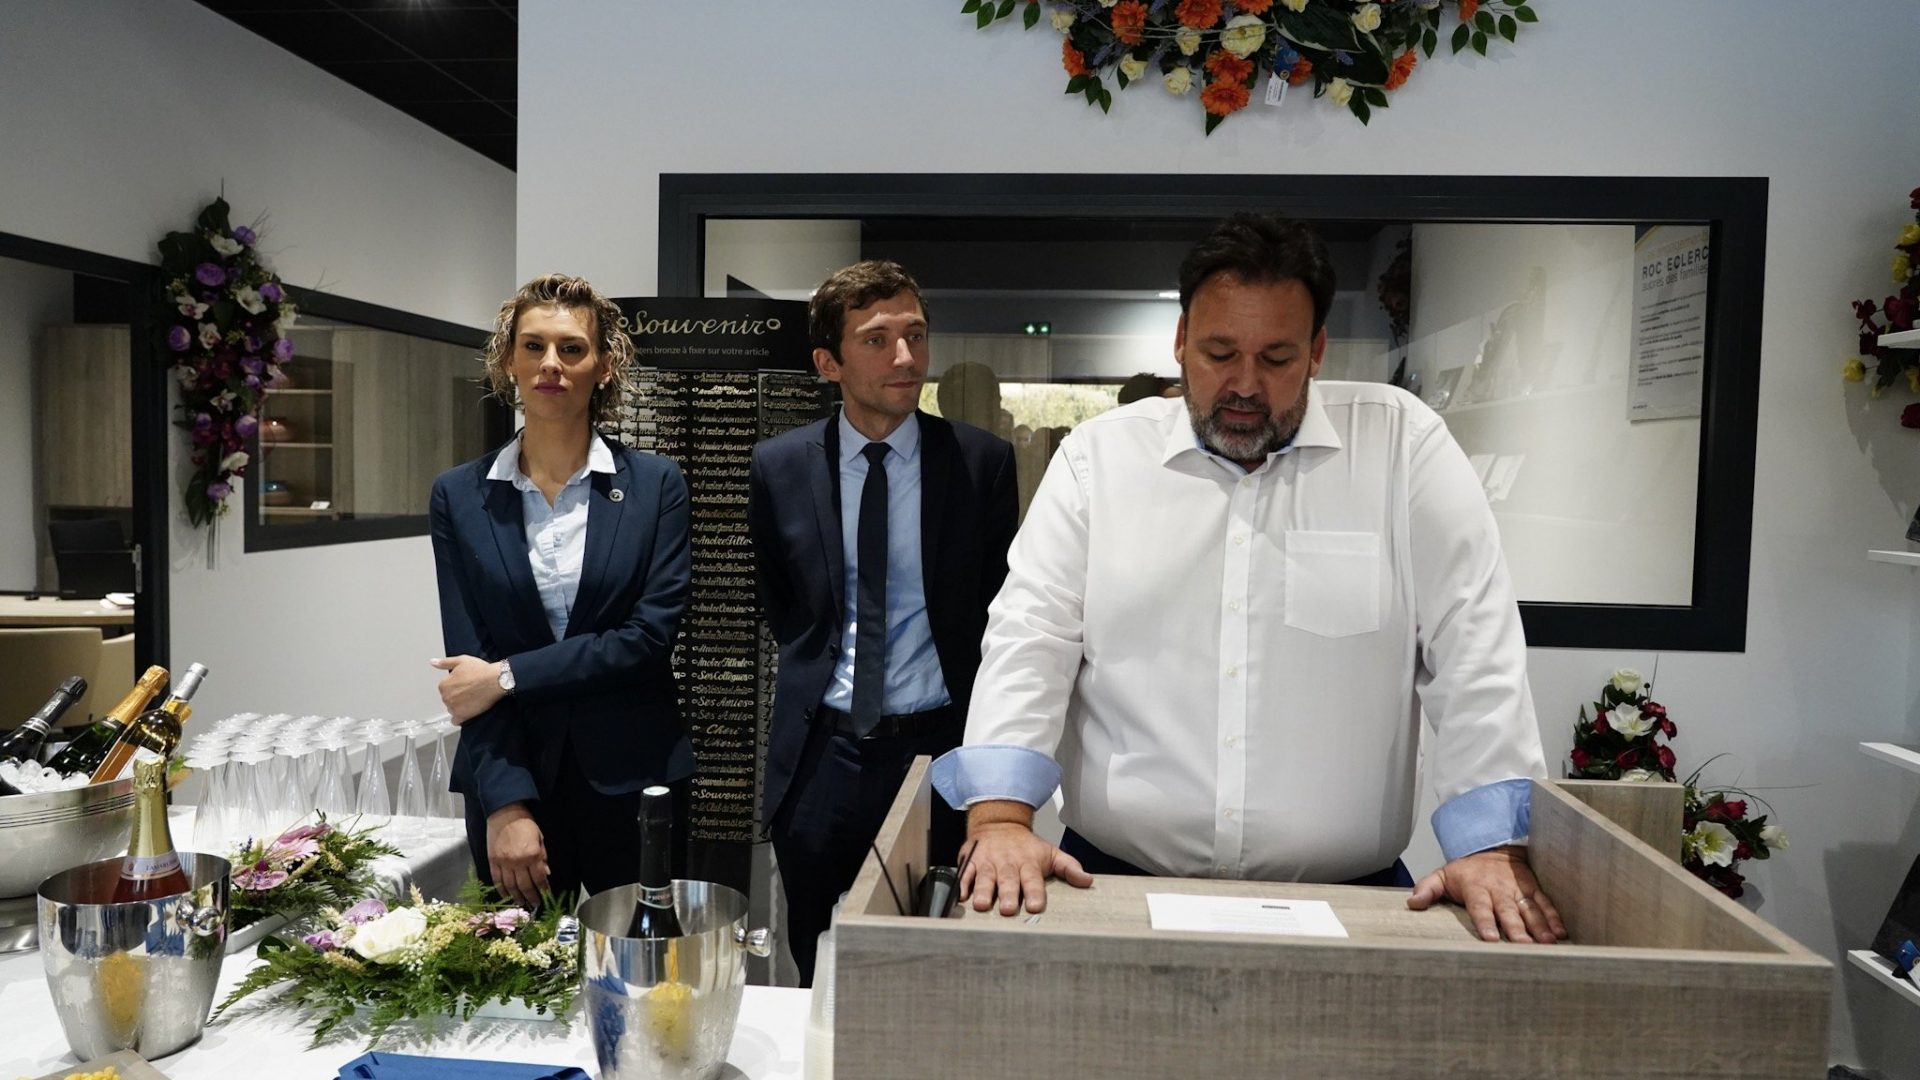 agence ROC ECLERC Beaucaire inauguration